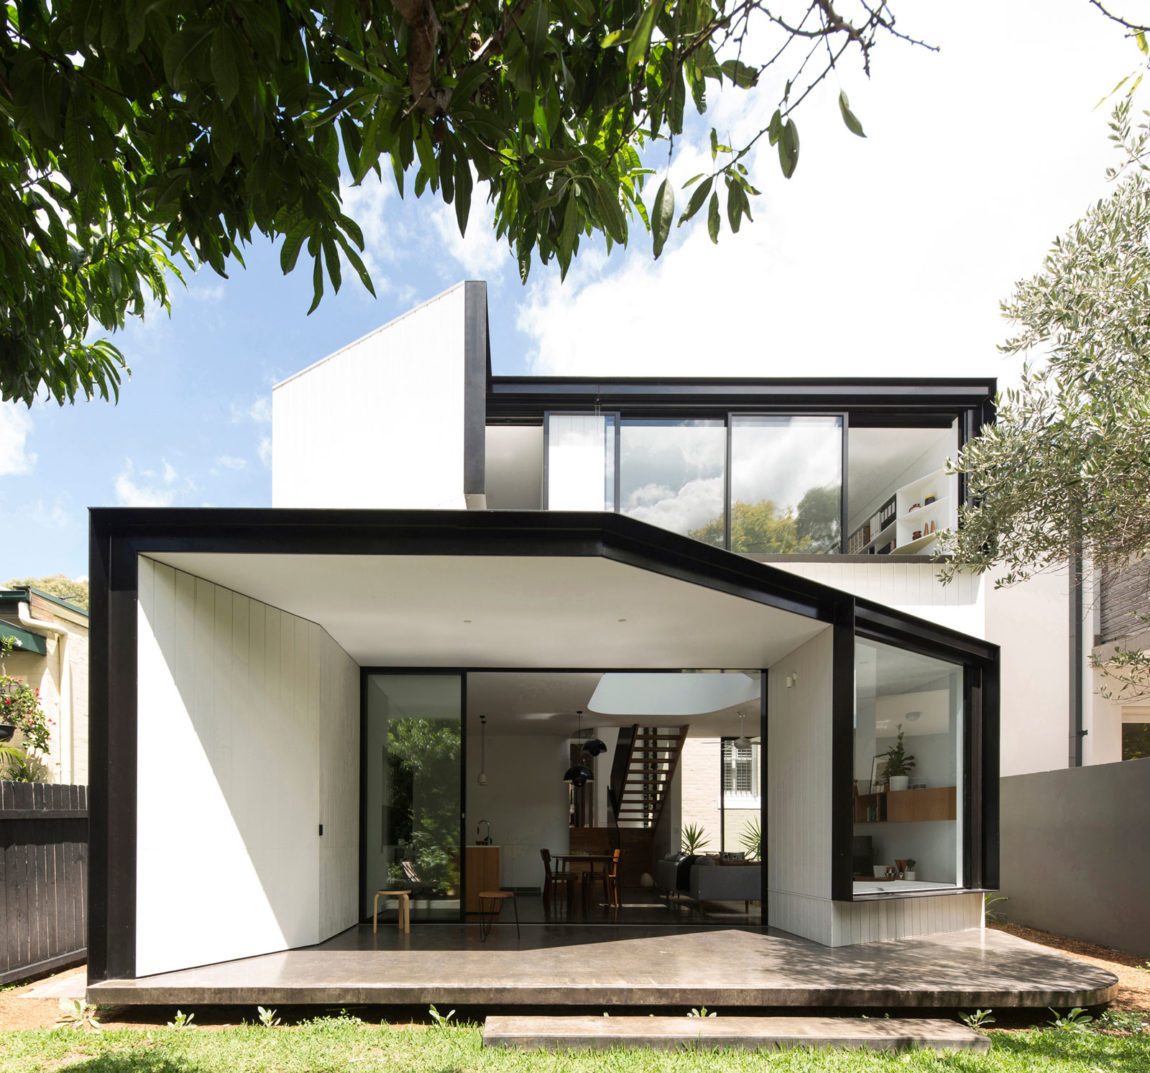 Unfurled House by Christopher Polly Architect (3)